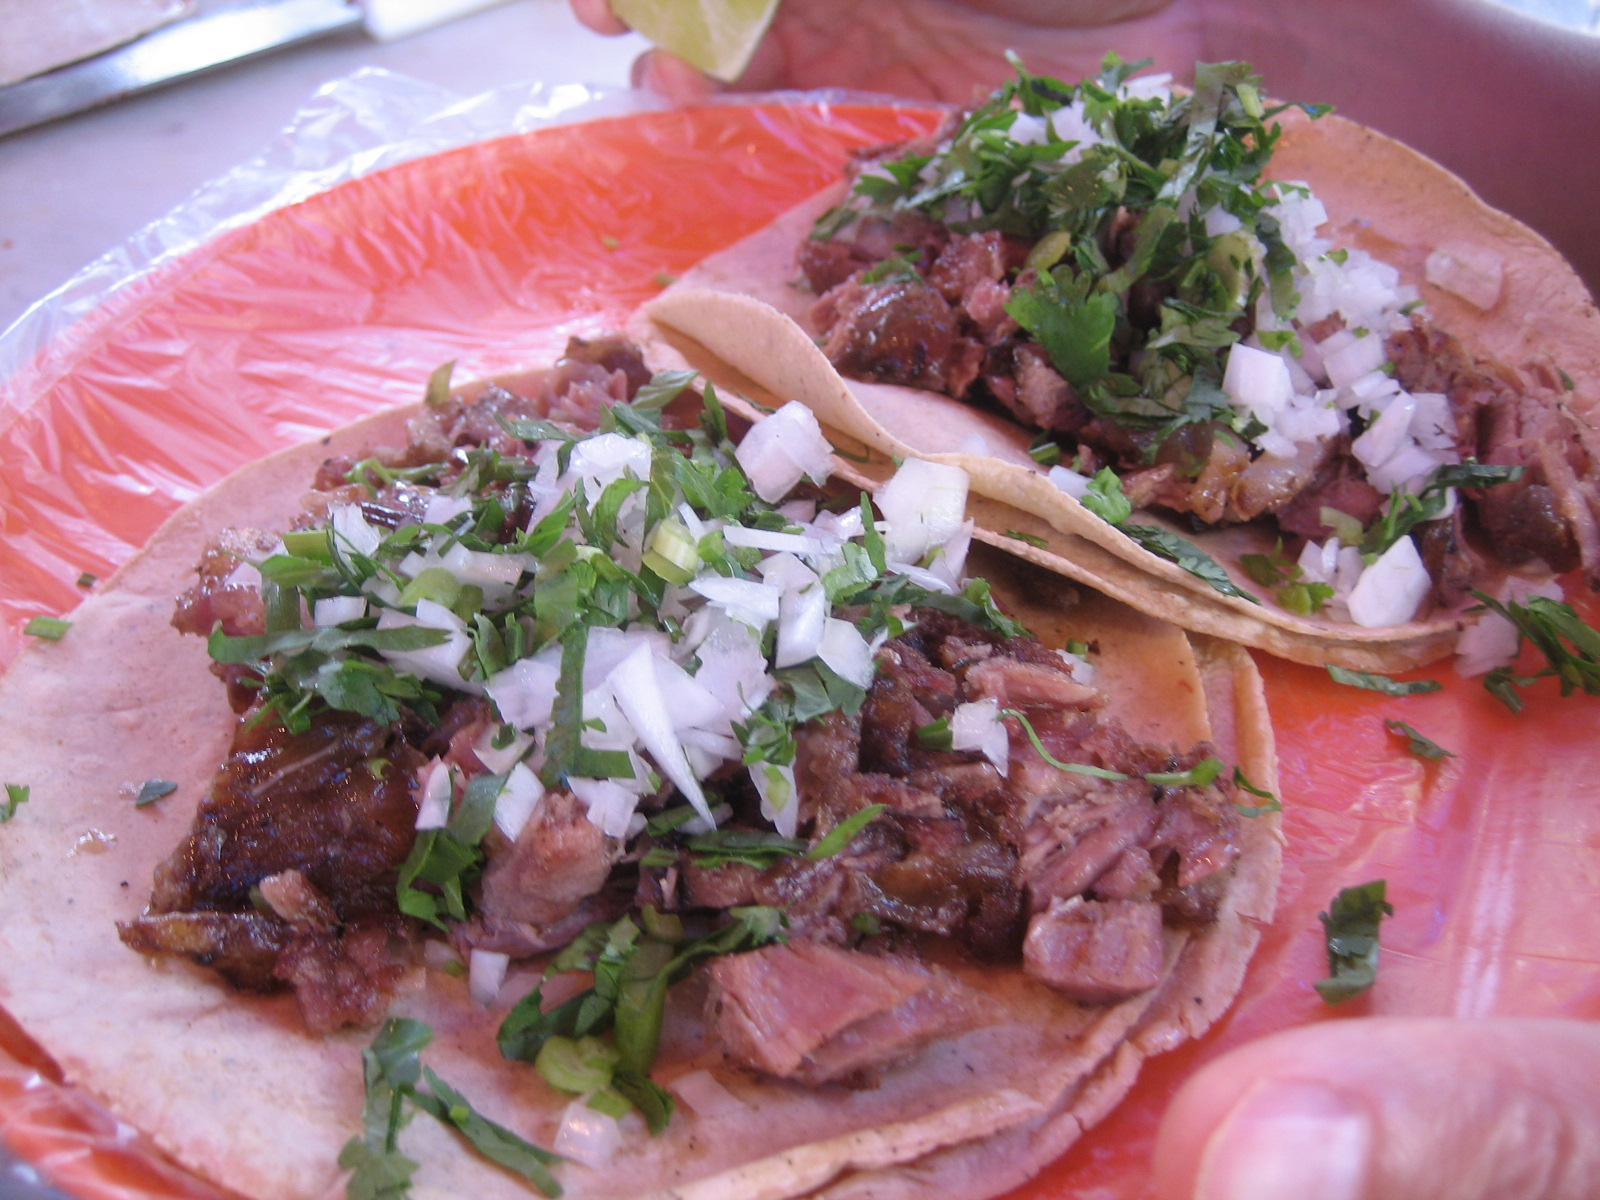 My first, self-organized Mexico City street food tour